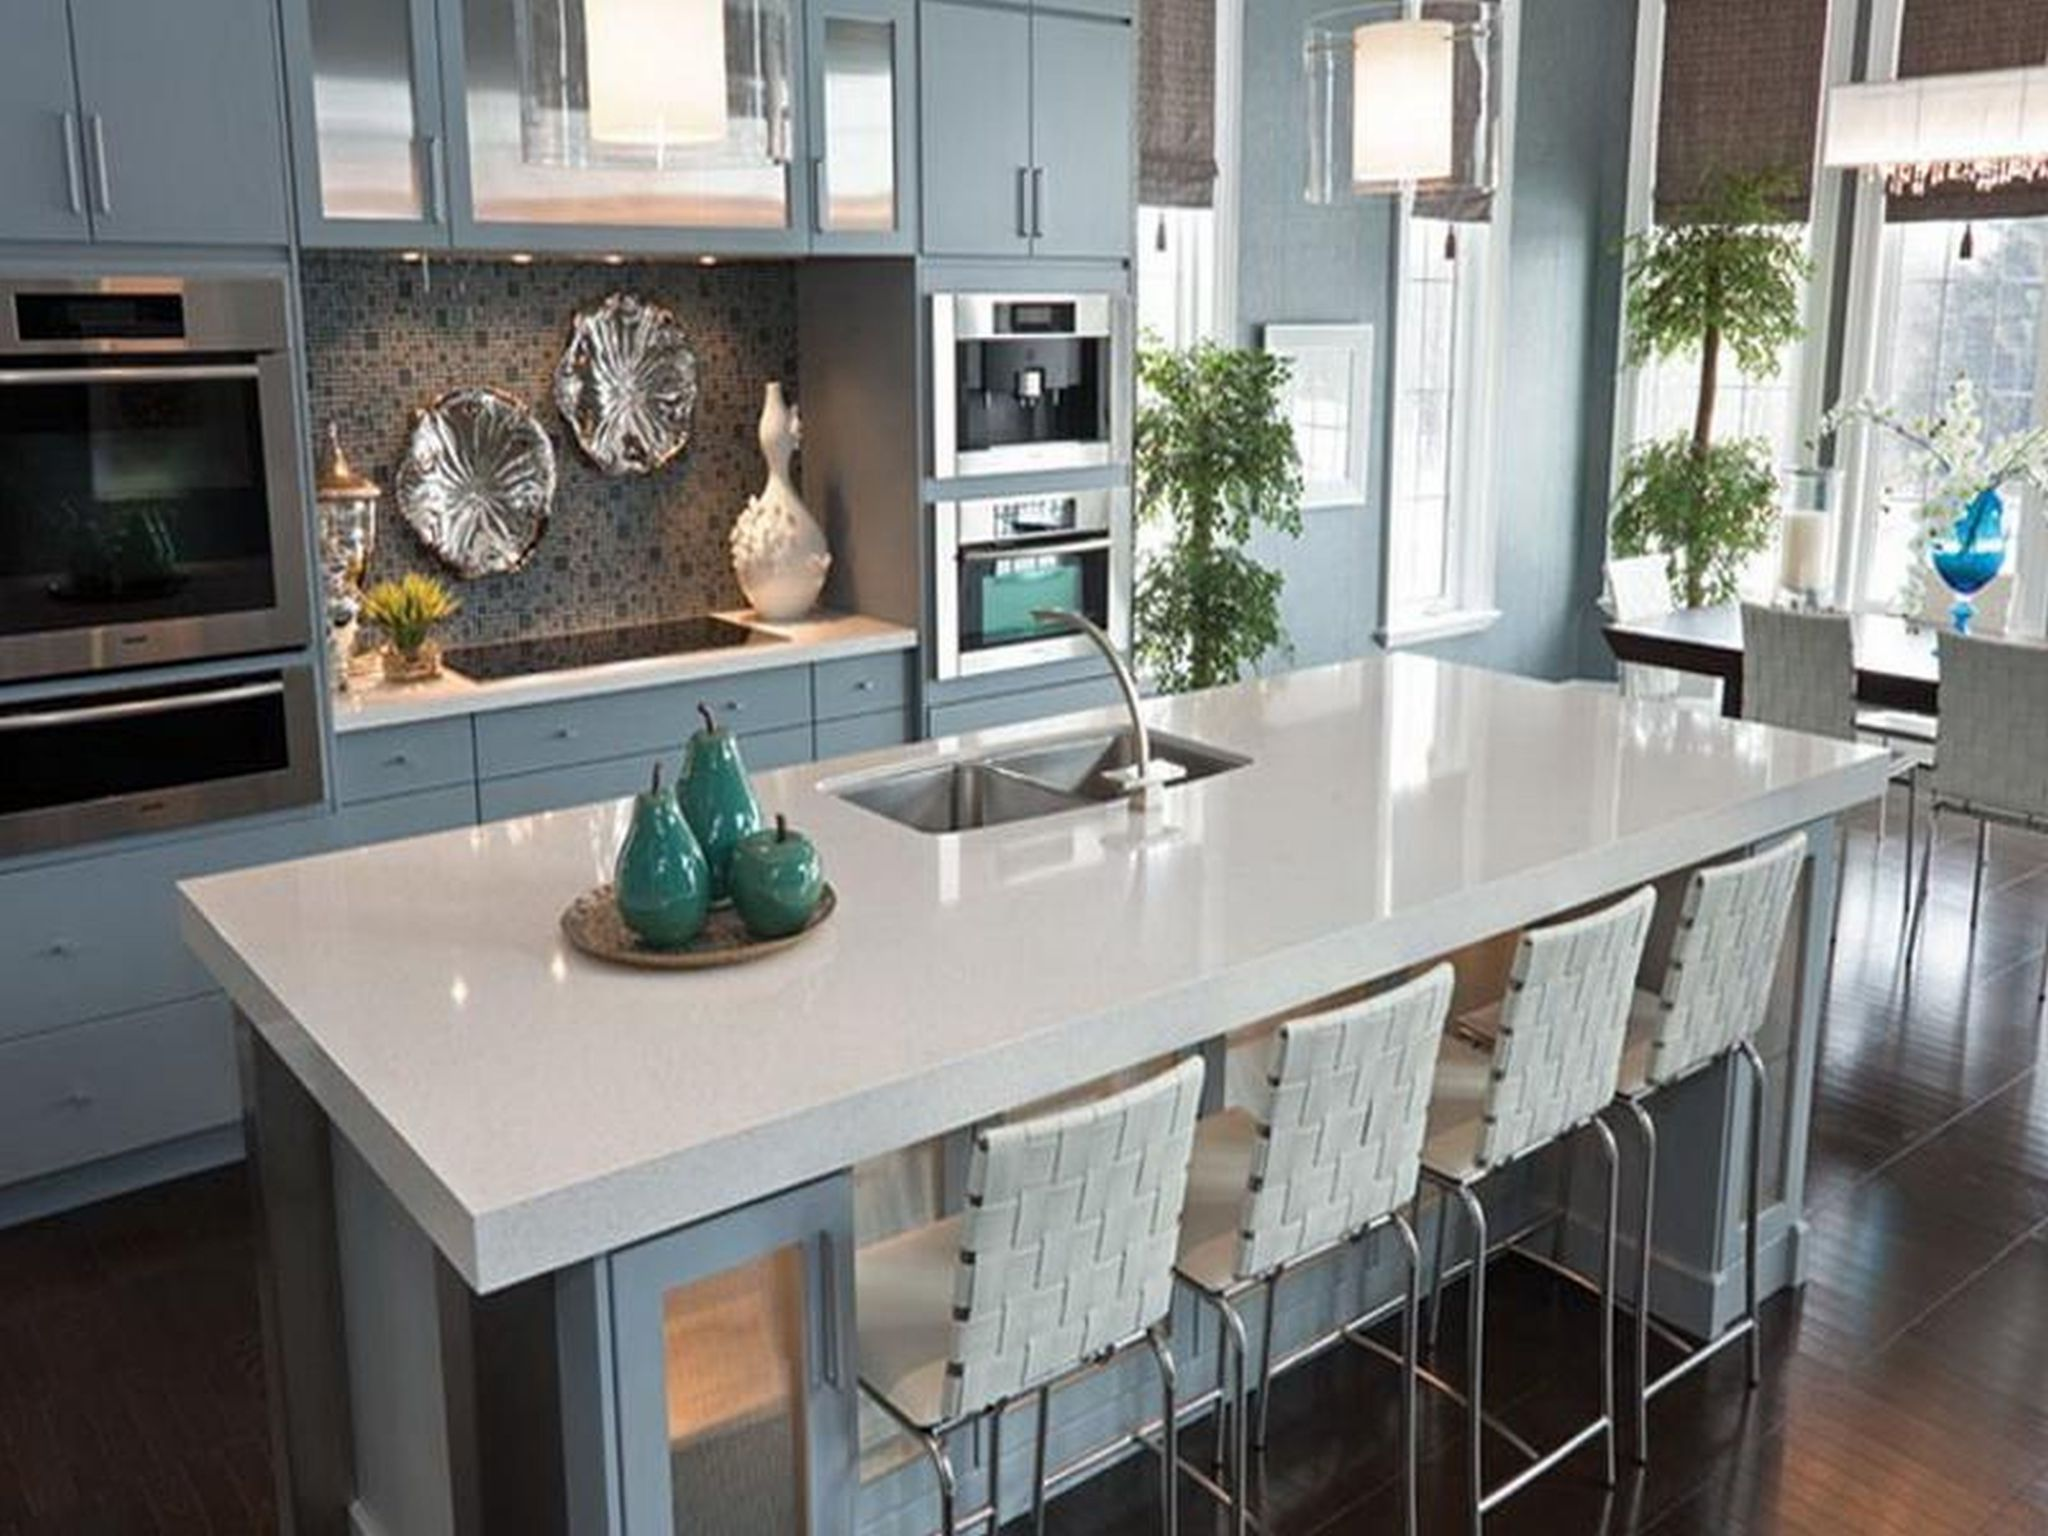 Marvelous Kitchen Decor Using Bar Table and Chair also Induction Stove